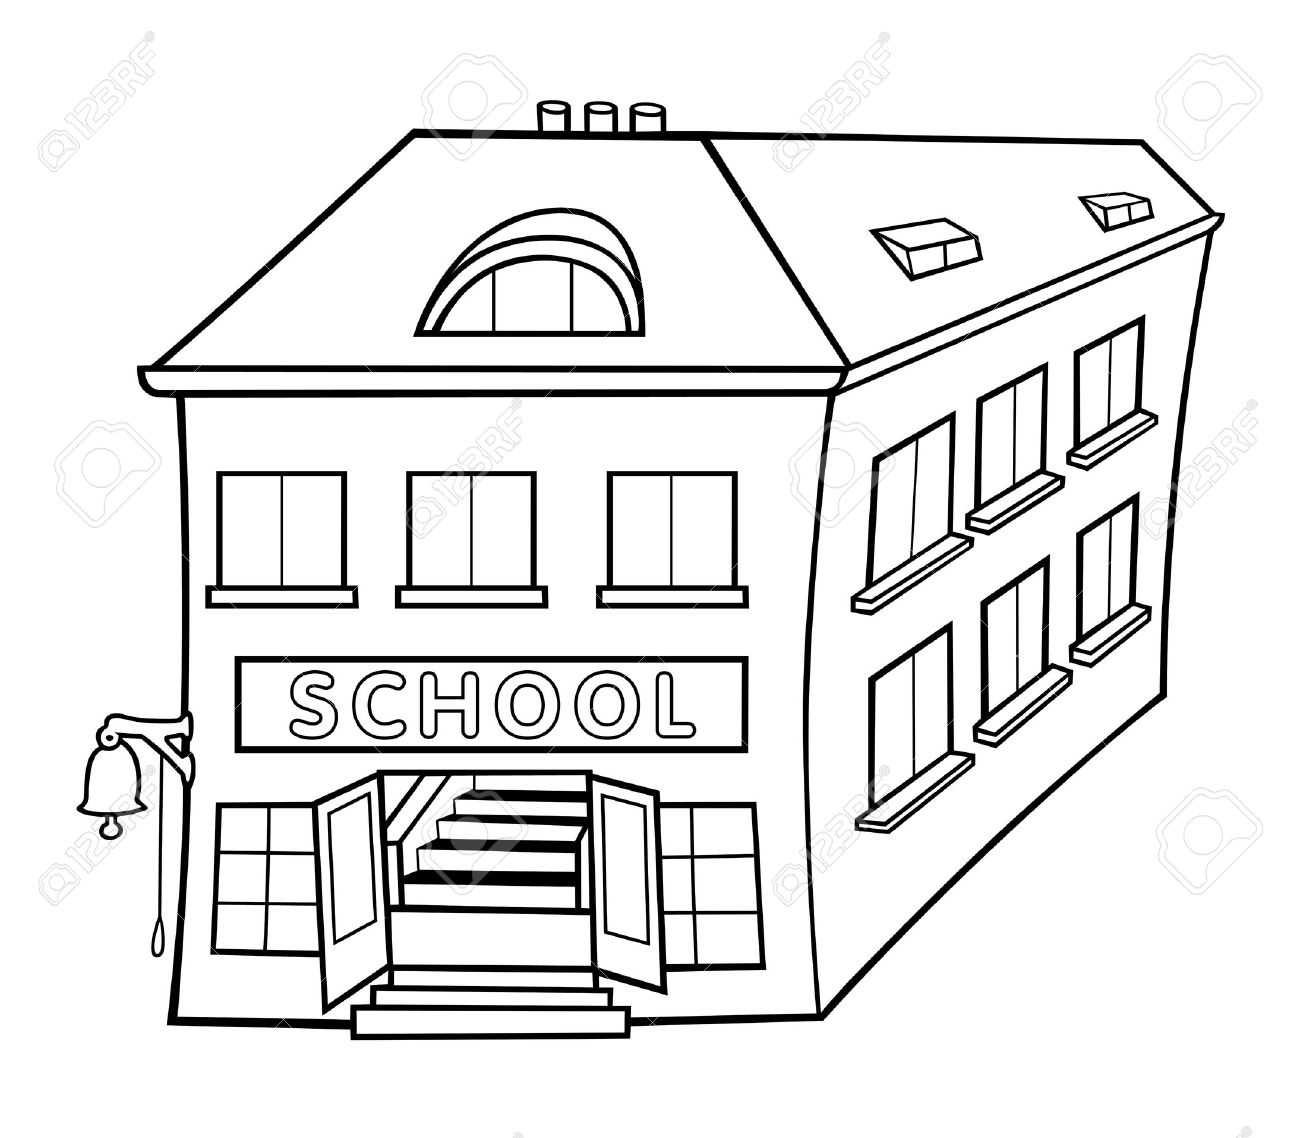 School black and white clip art